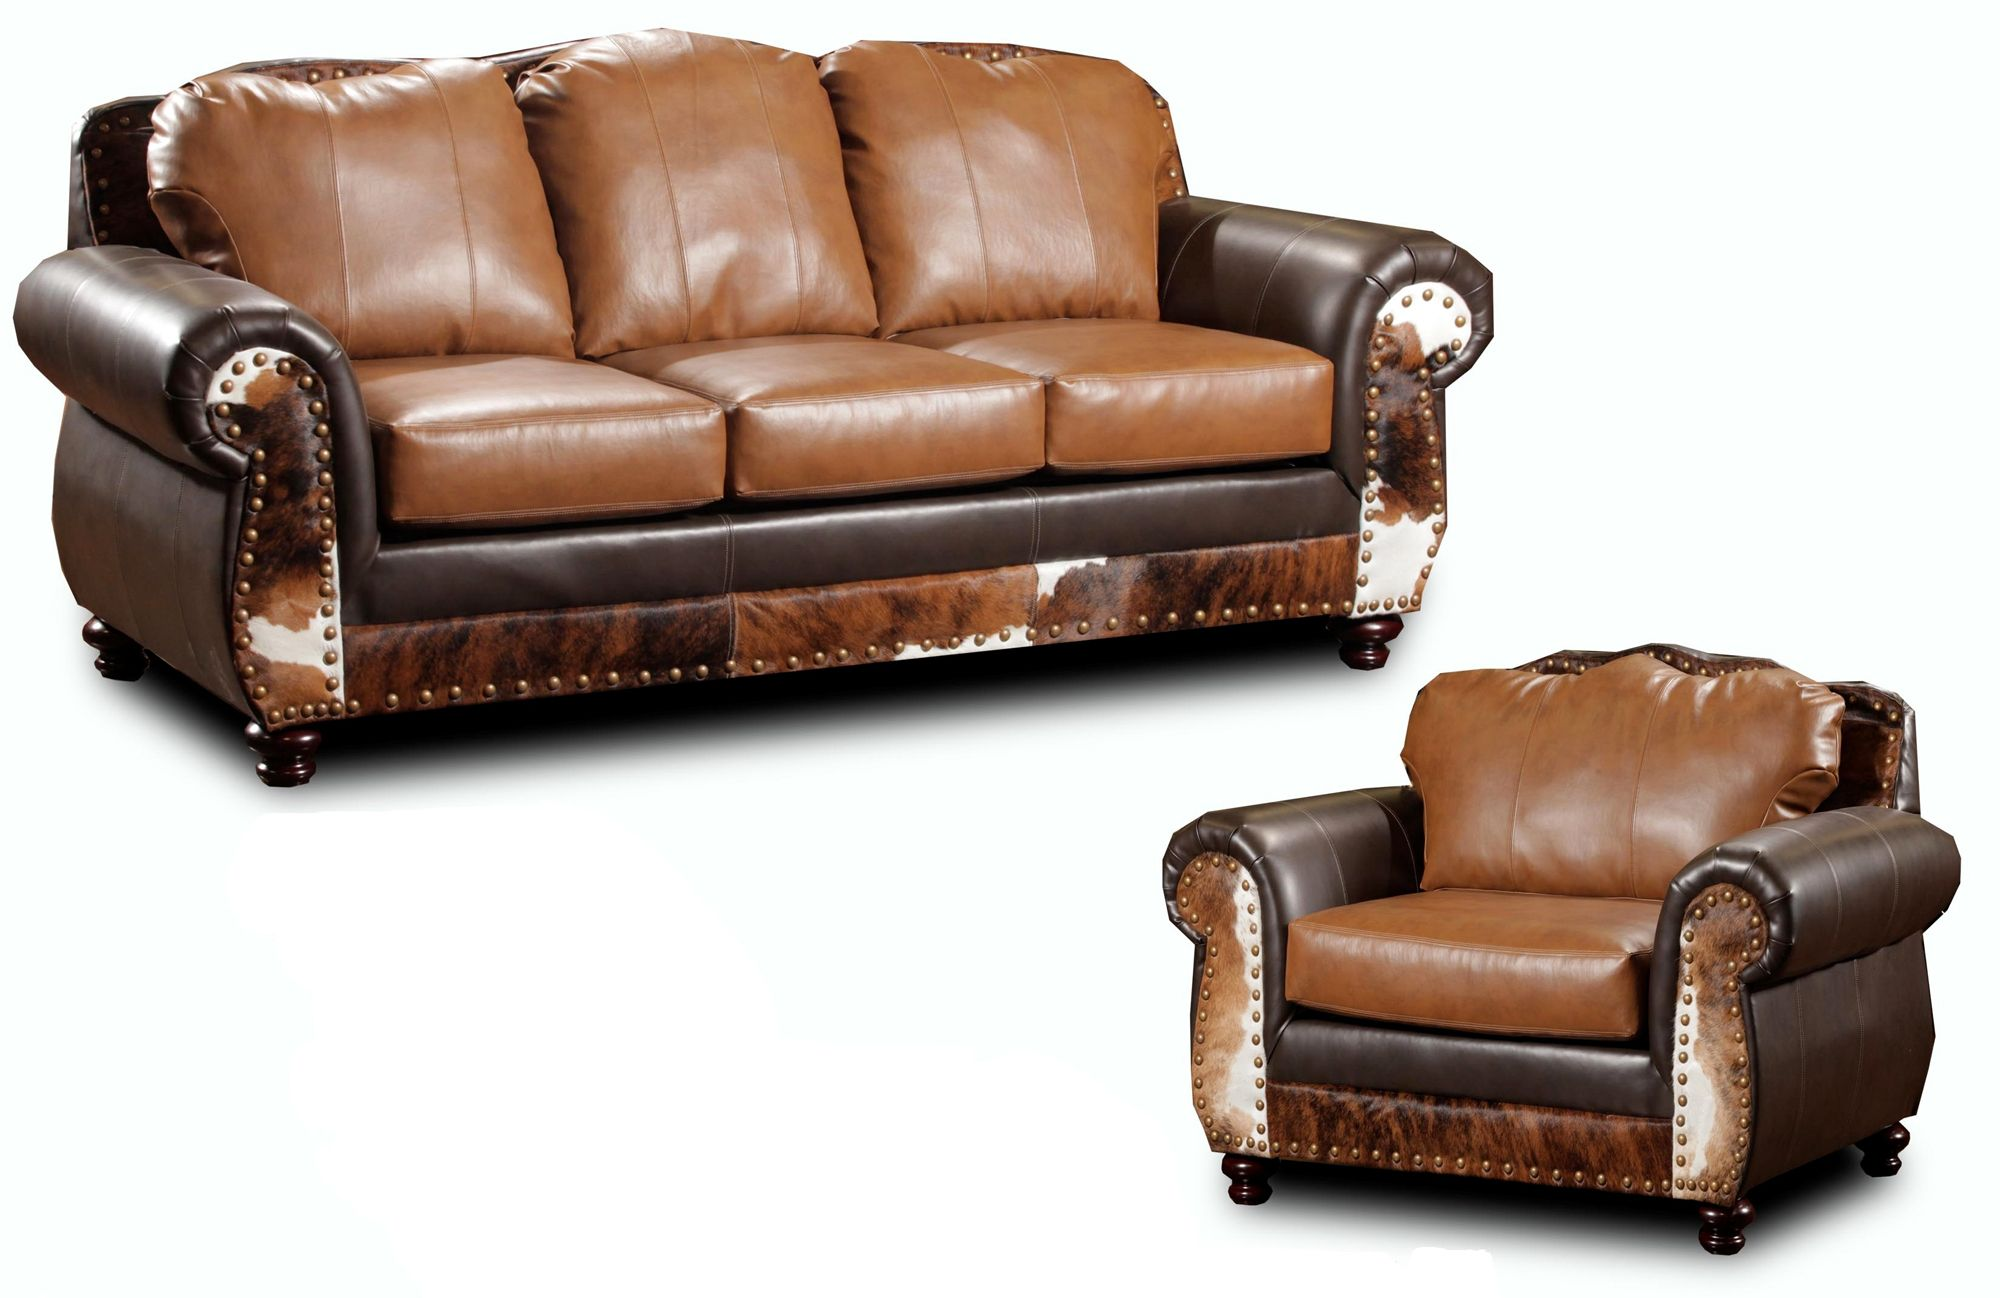 Denver Rustic Lodge Leather Sofa And